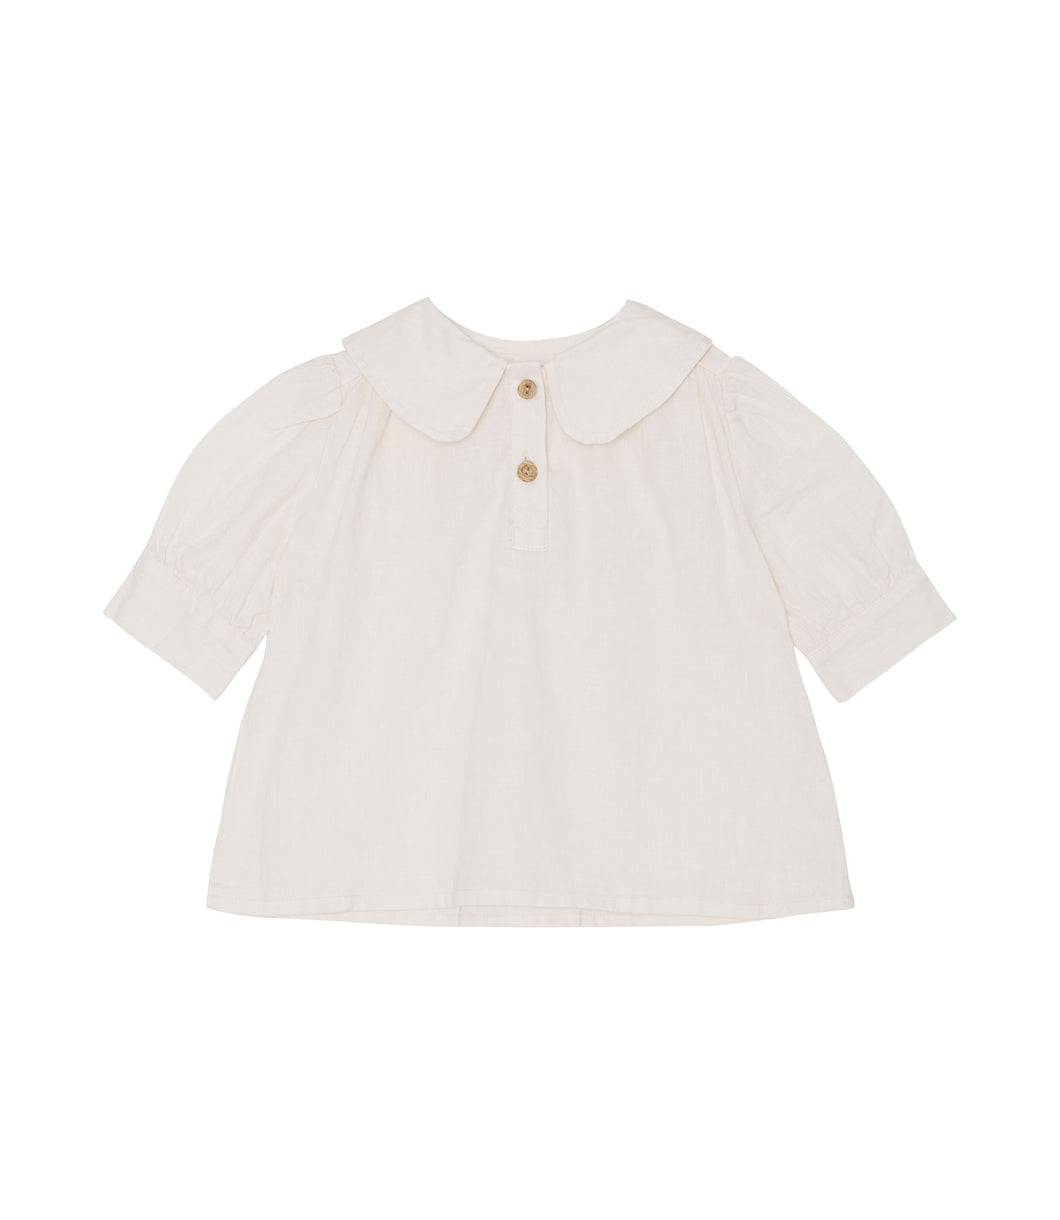 Yellow Pelota Collar Blouse - Natural 3Y, 4Y